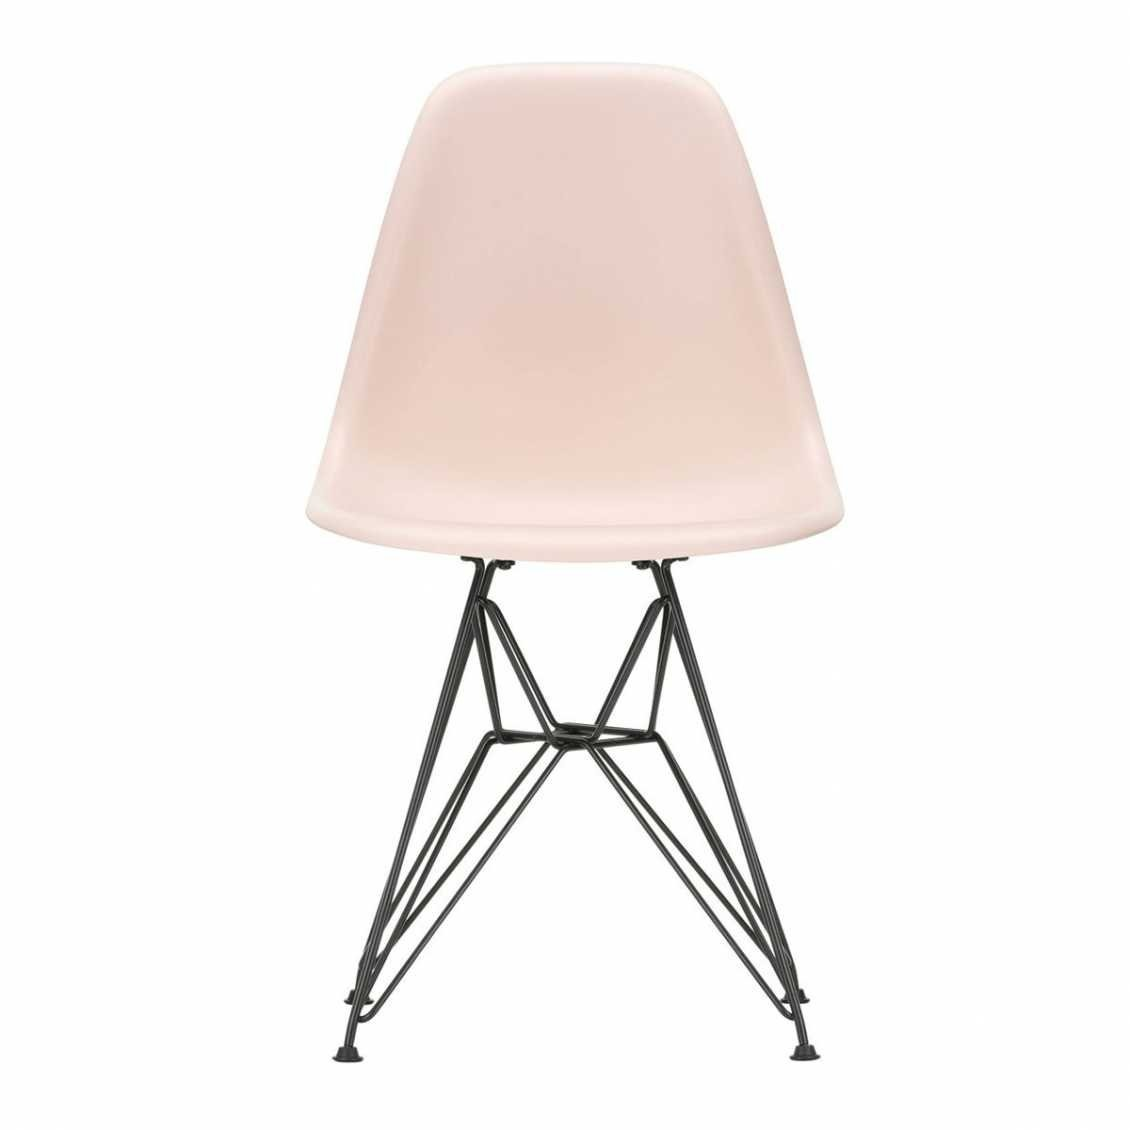 Swell Plastic Chair Dsr Basis Zwart Nordic New Machost Co Dining Chair Design Ideas Machostcouk